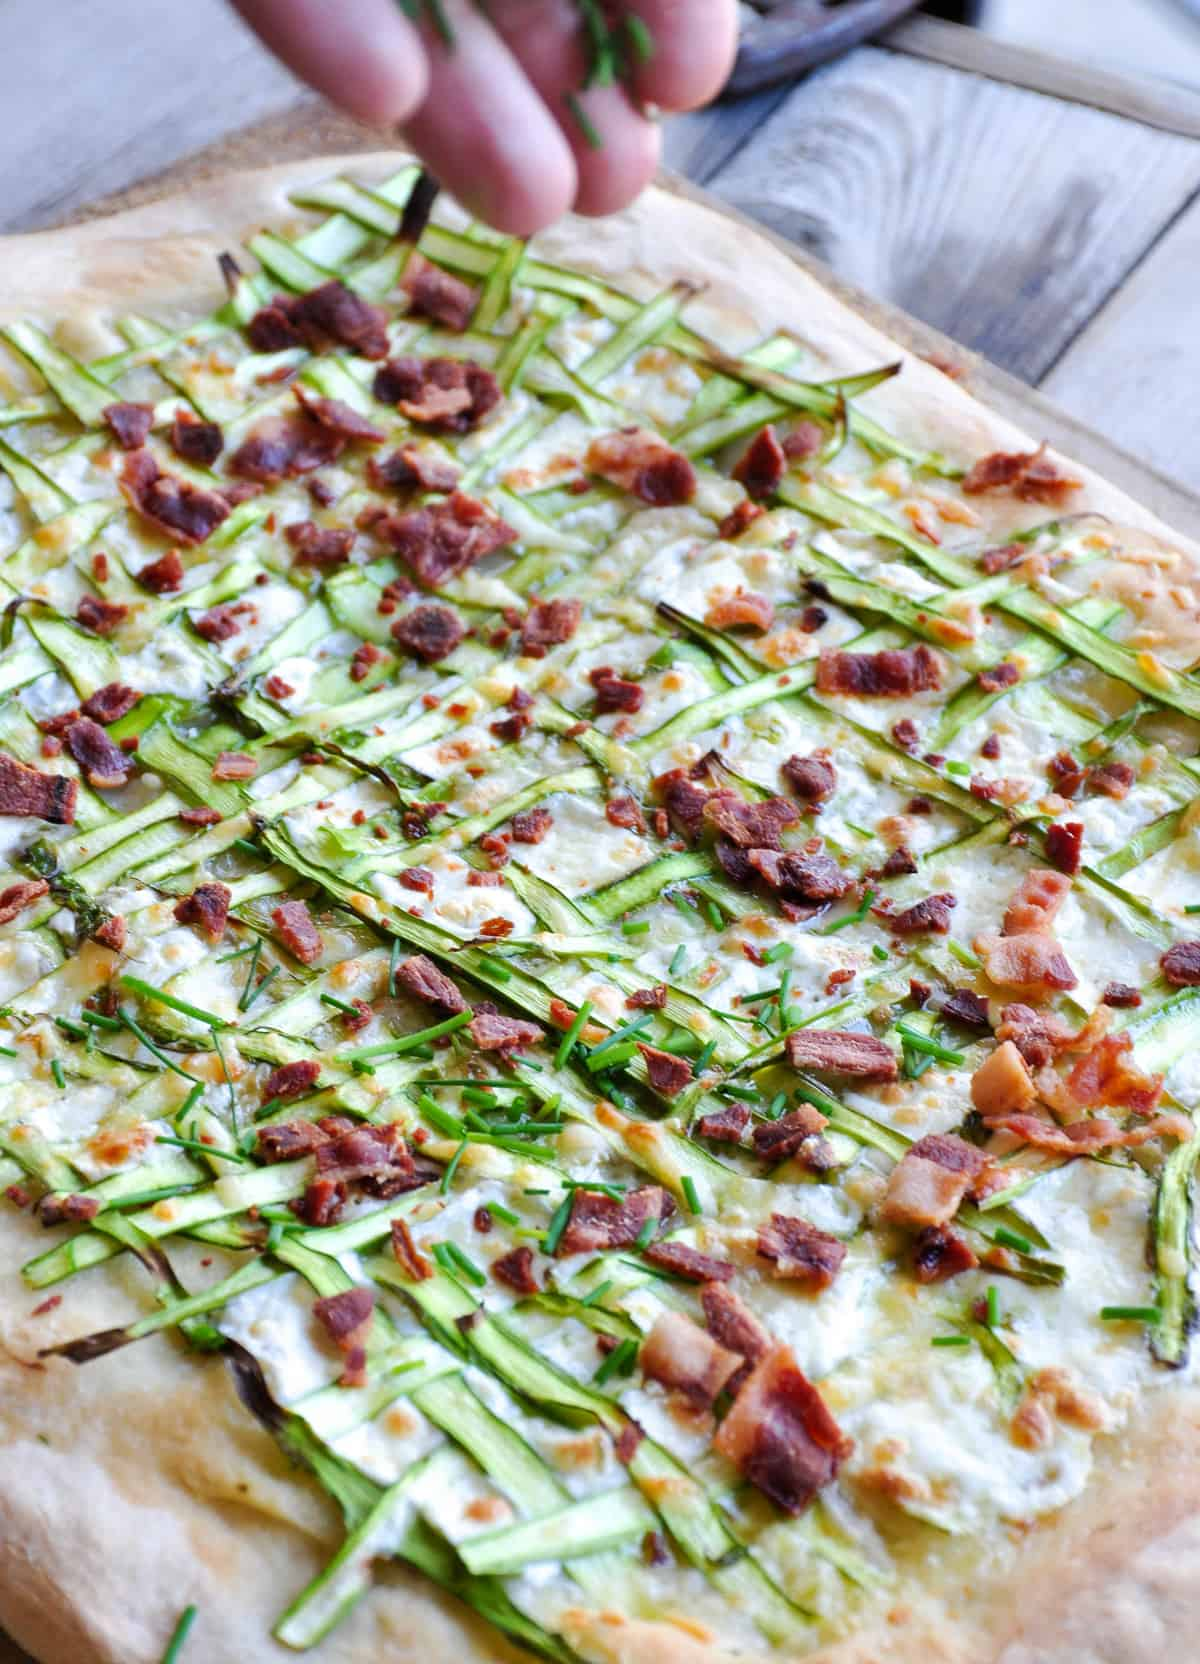 Chives added to Asparagus Pizza Ribbon